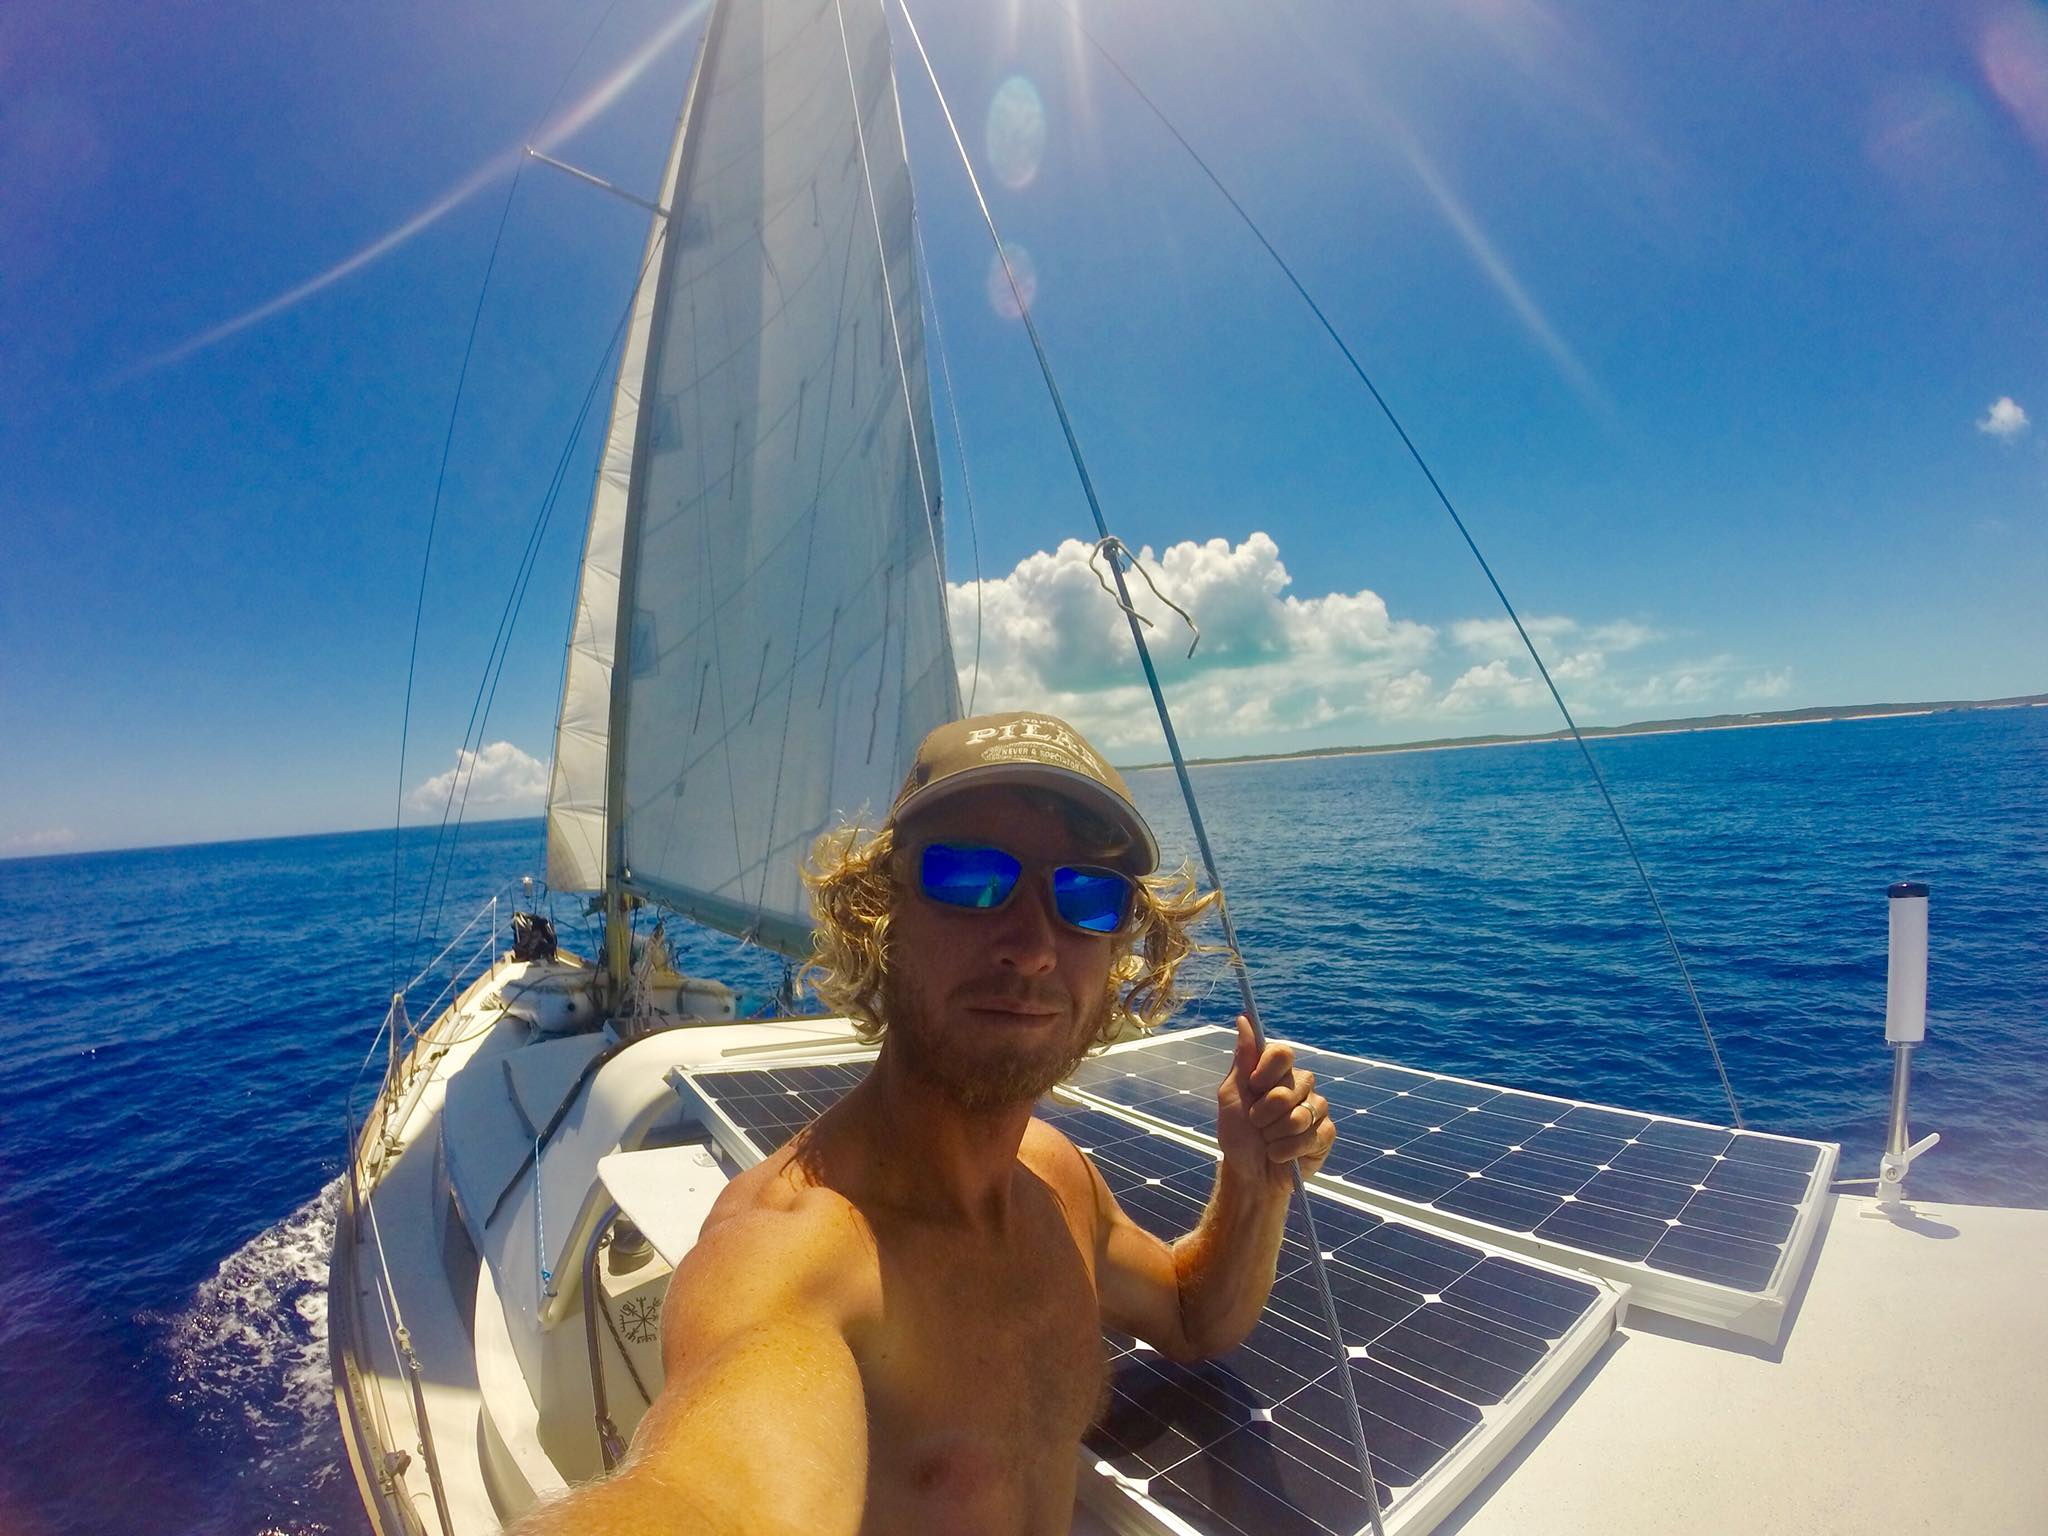 9 Significant Questions You Should Ask Yourself Before Buying A Sailboat